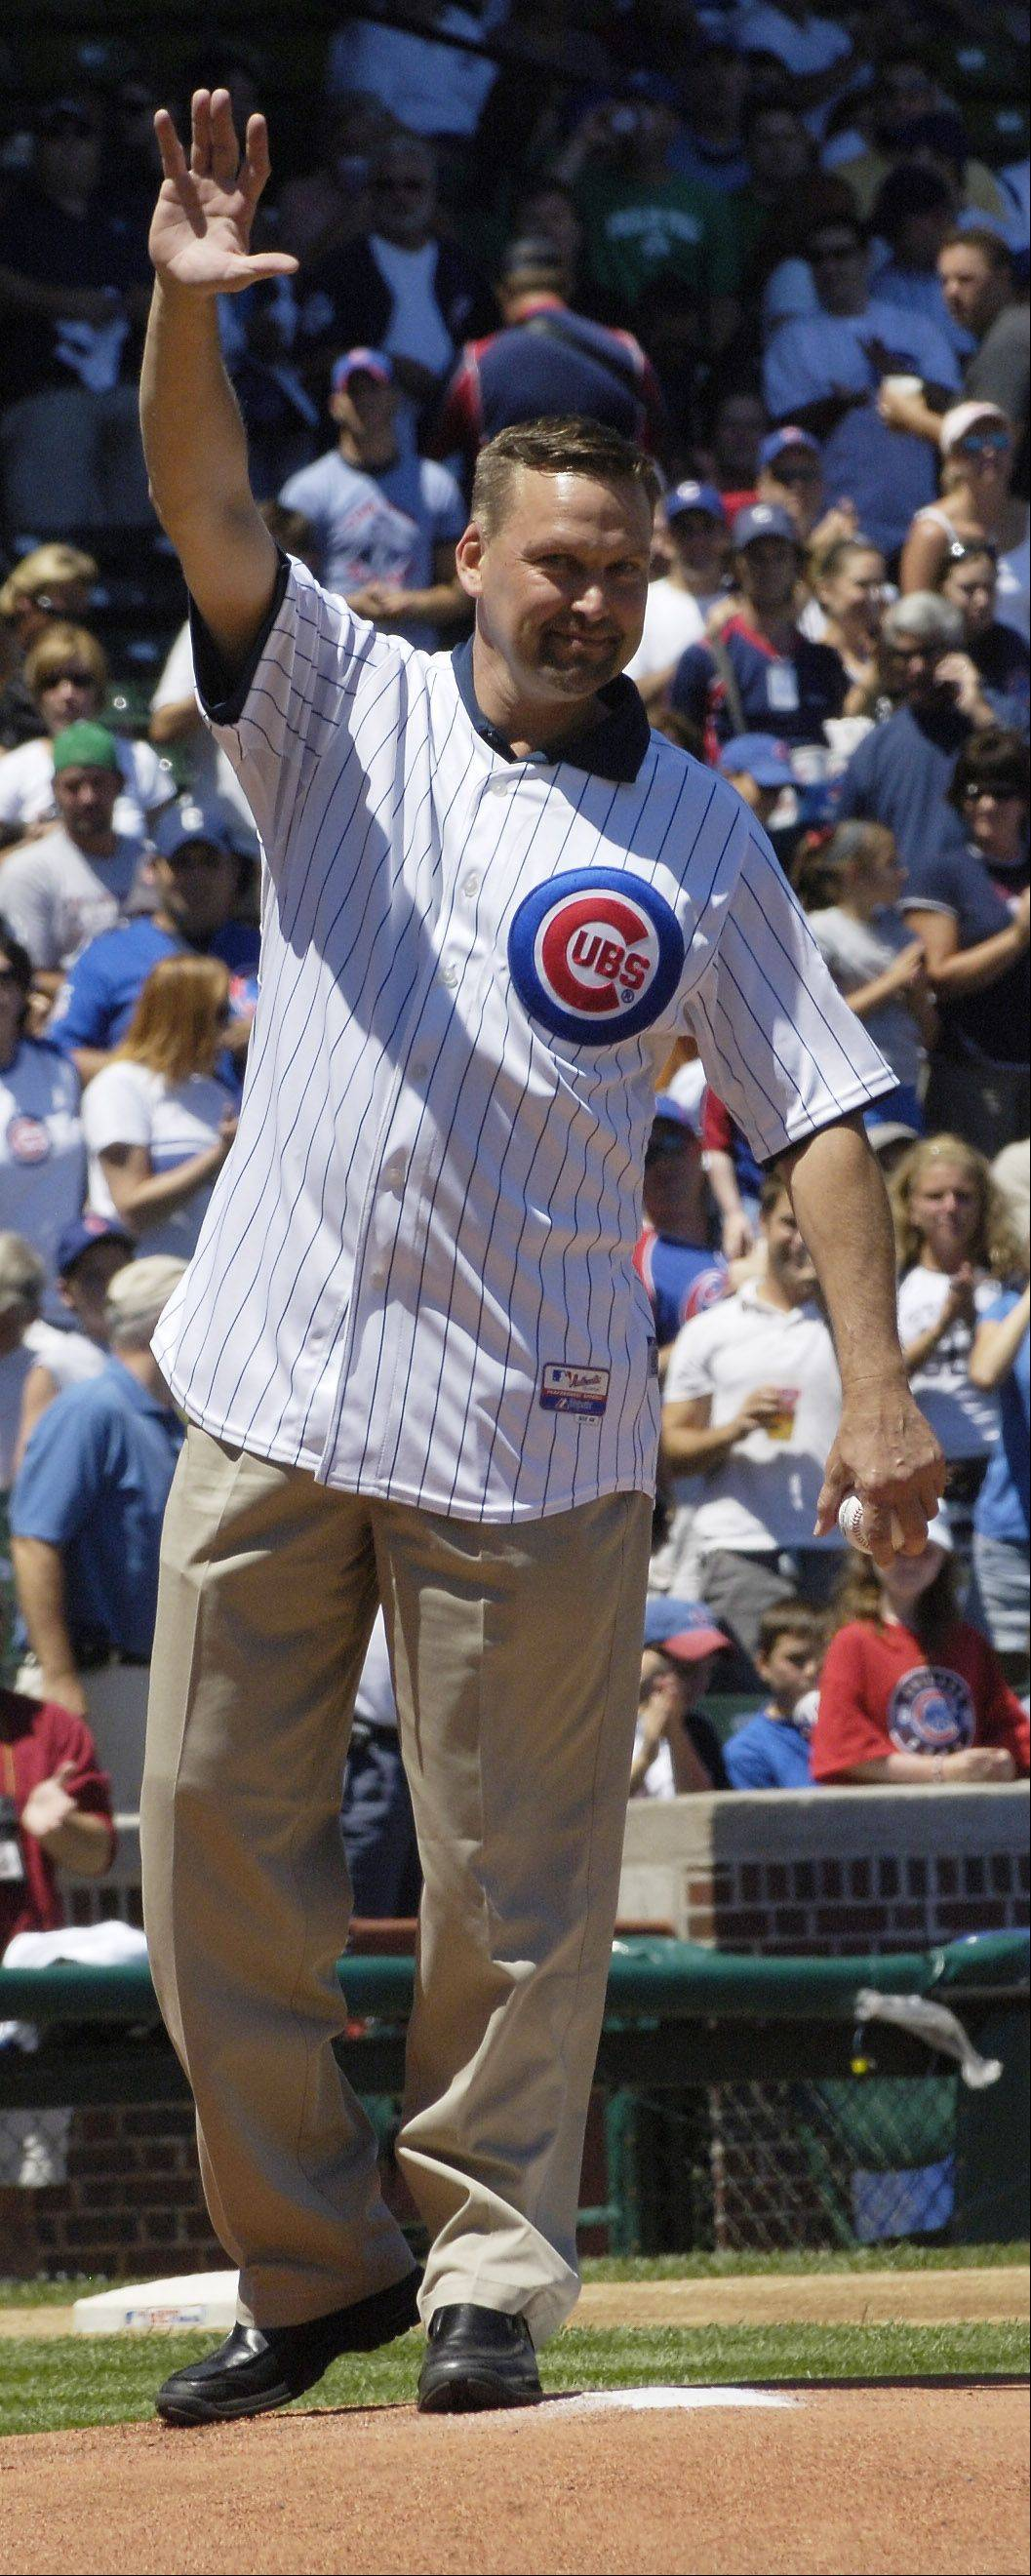 Former Cubs first baseman Mark Grace greets the crowd at Wrigley Field before throwing out the first pitch in 2007 game.